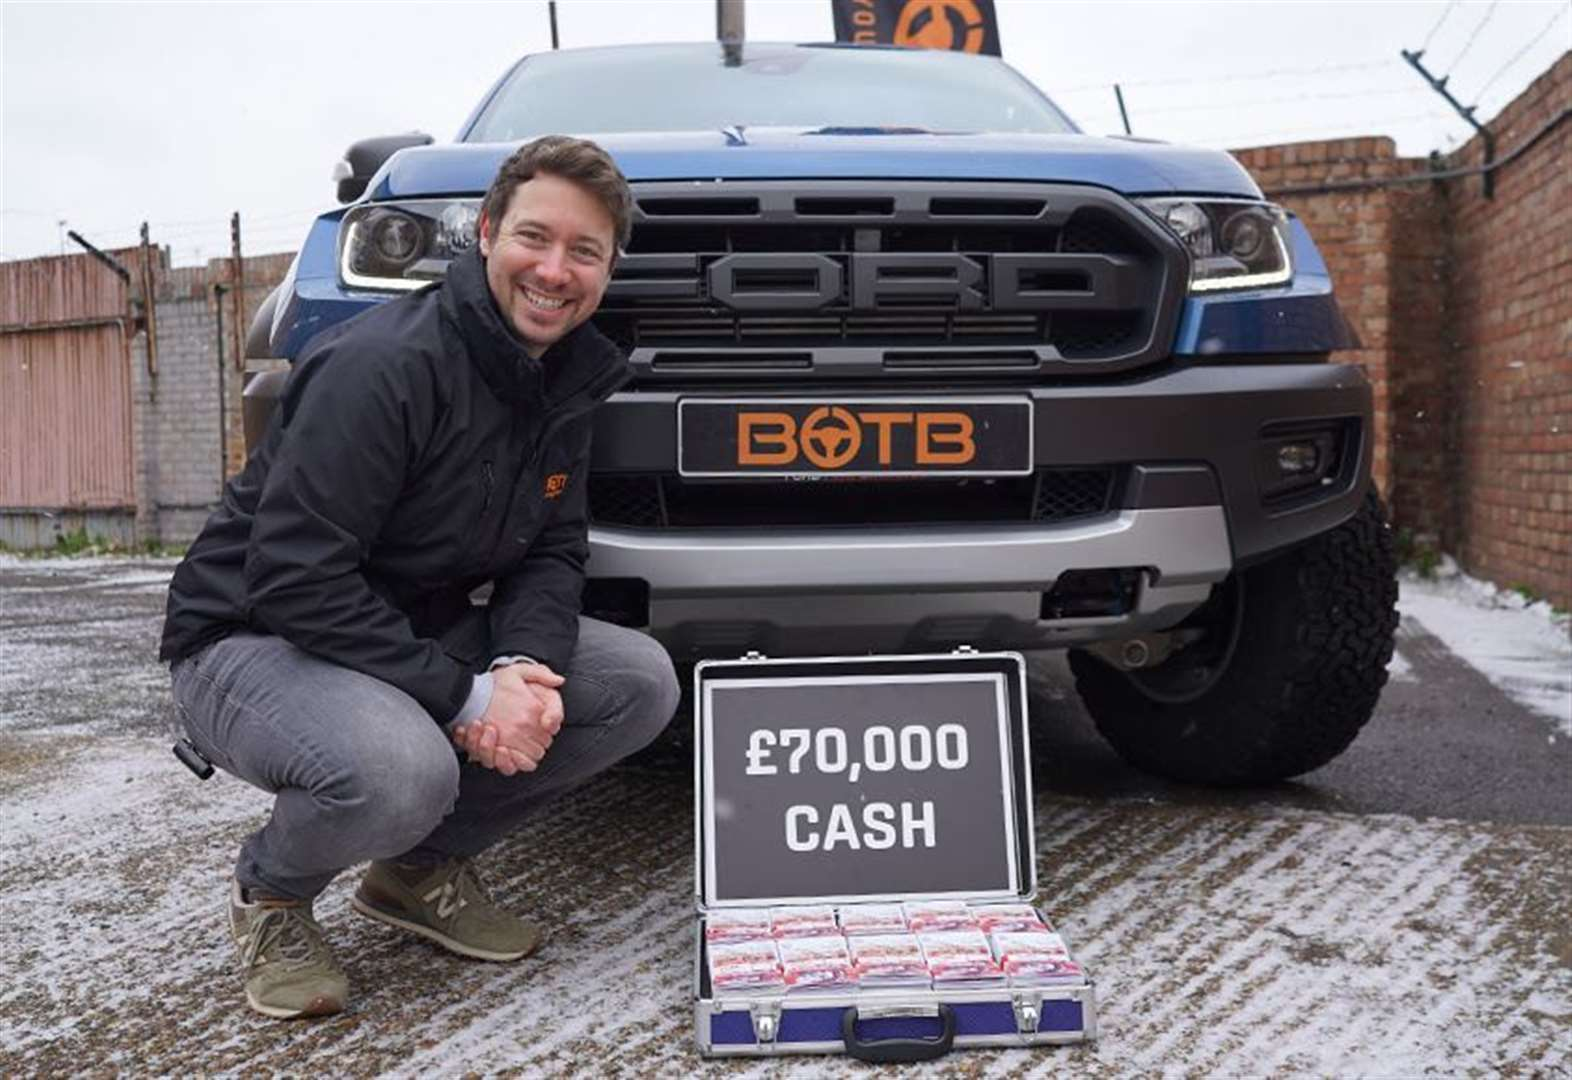 Maintenance worker wins dream truck and £70k